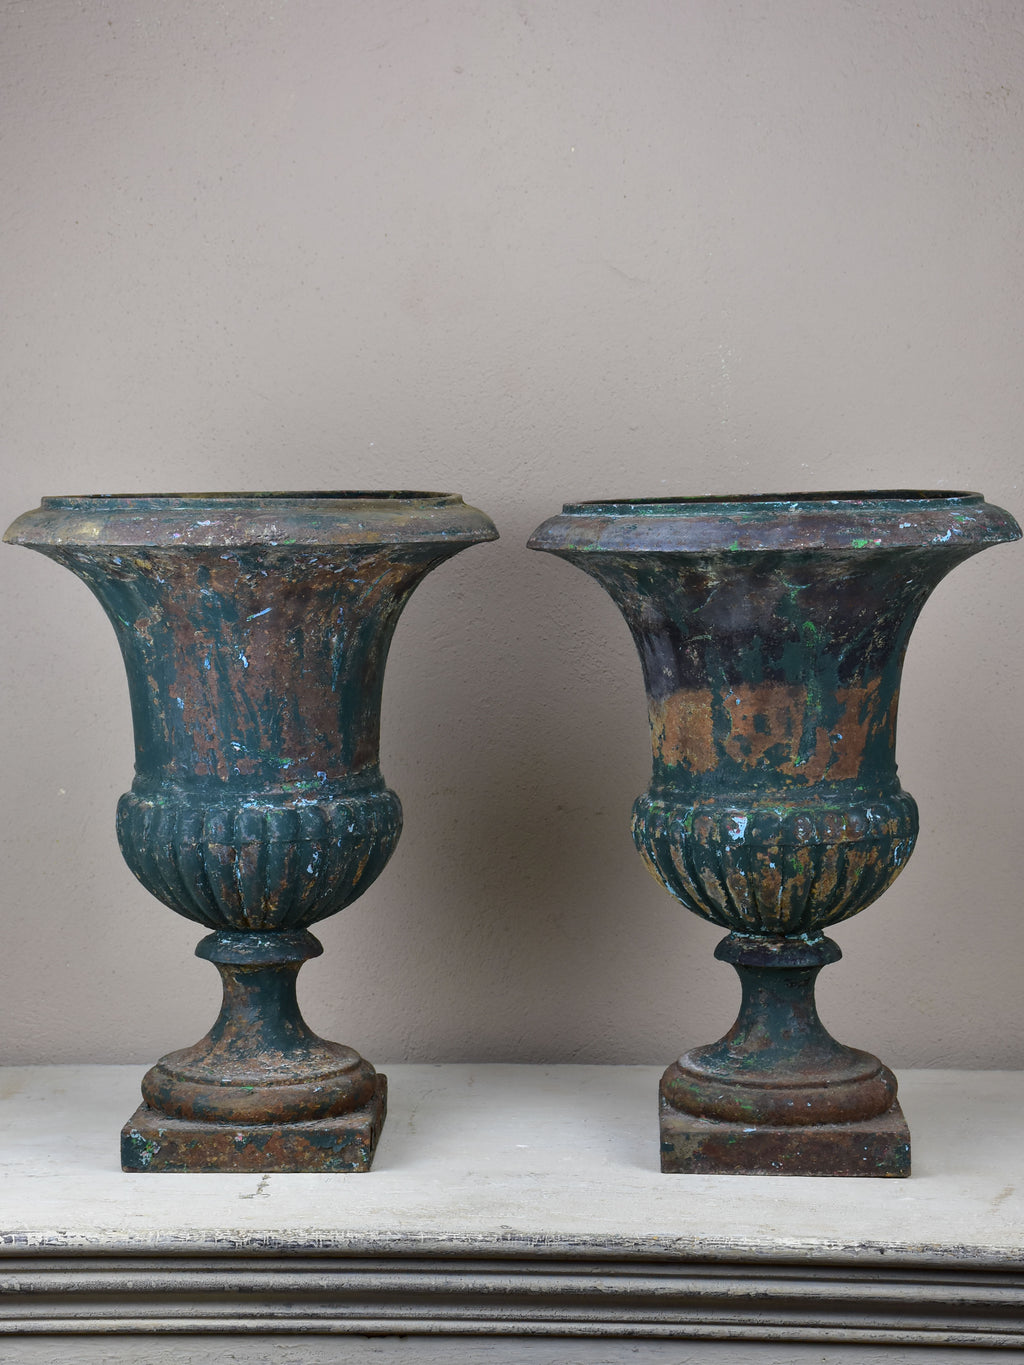 Pair of 19th Century French garden urns